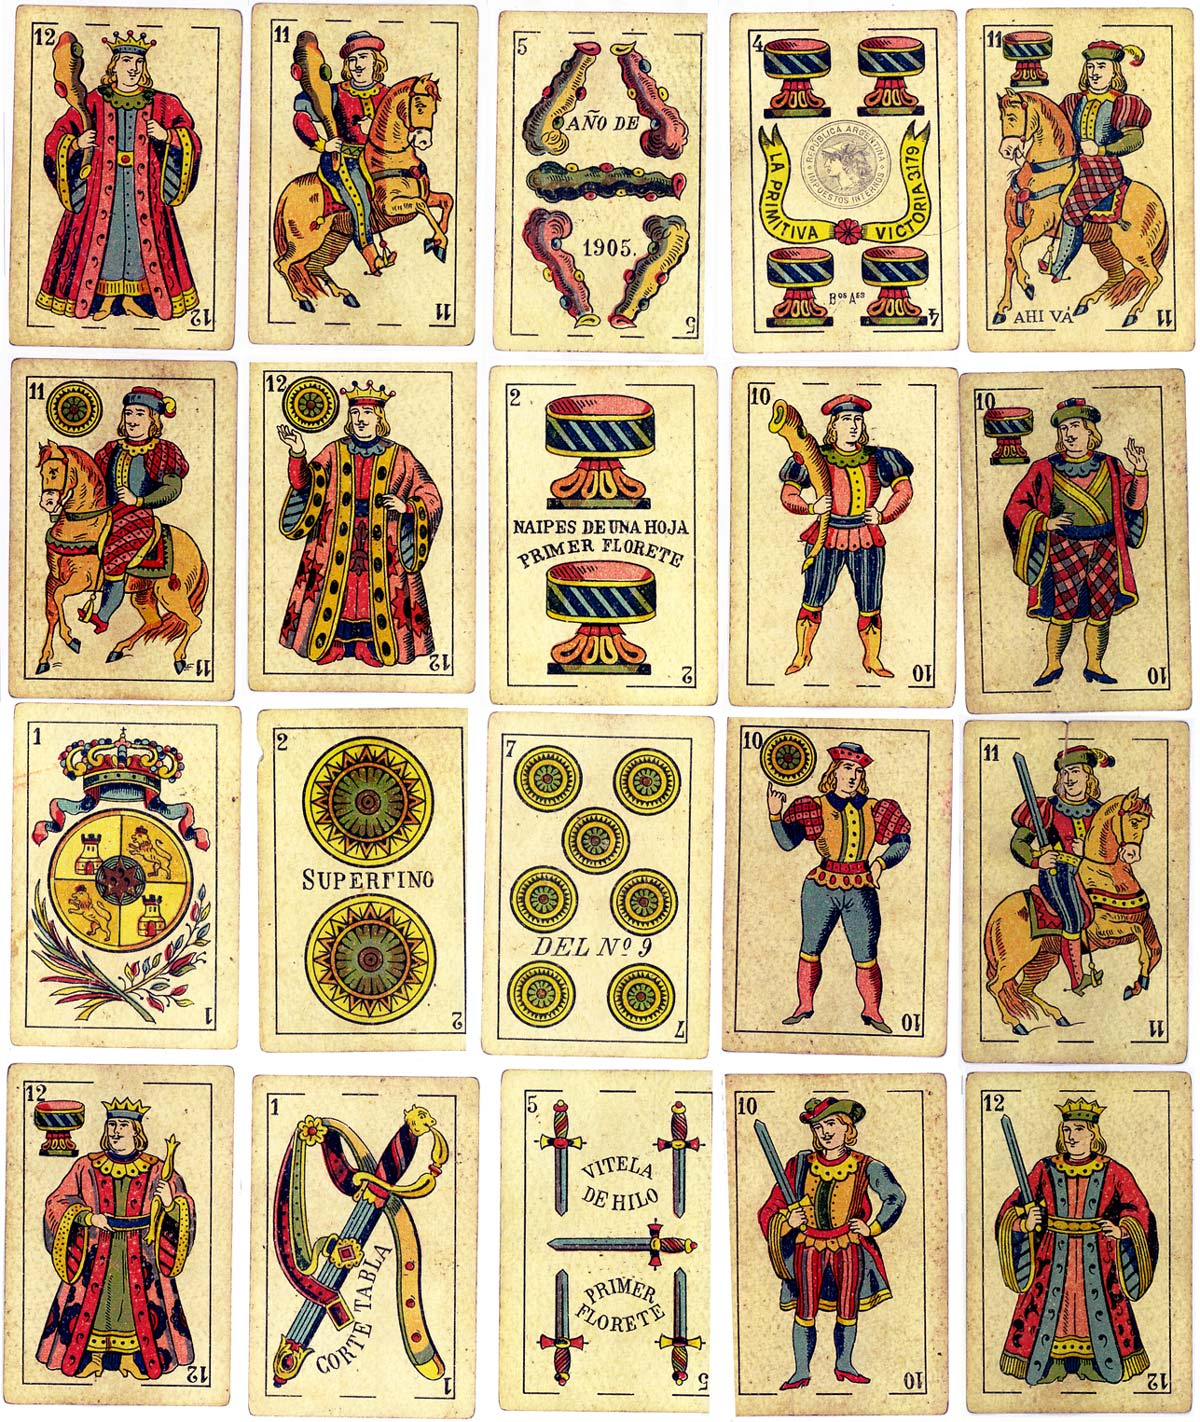 Cadiz style playing cards manufactured by La Primitiva, Buenos Aires, c.1905